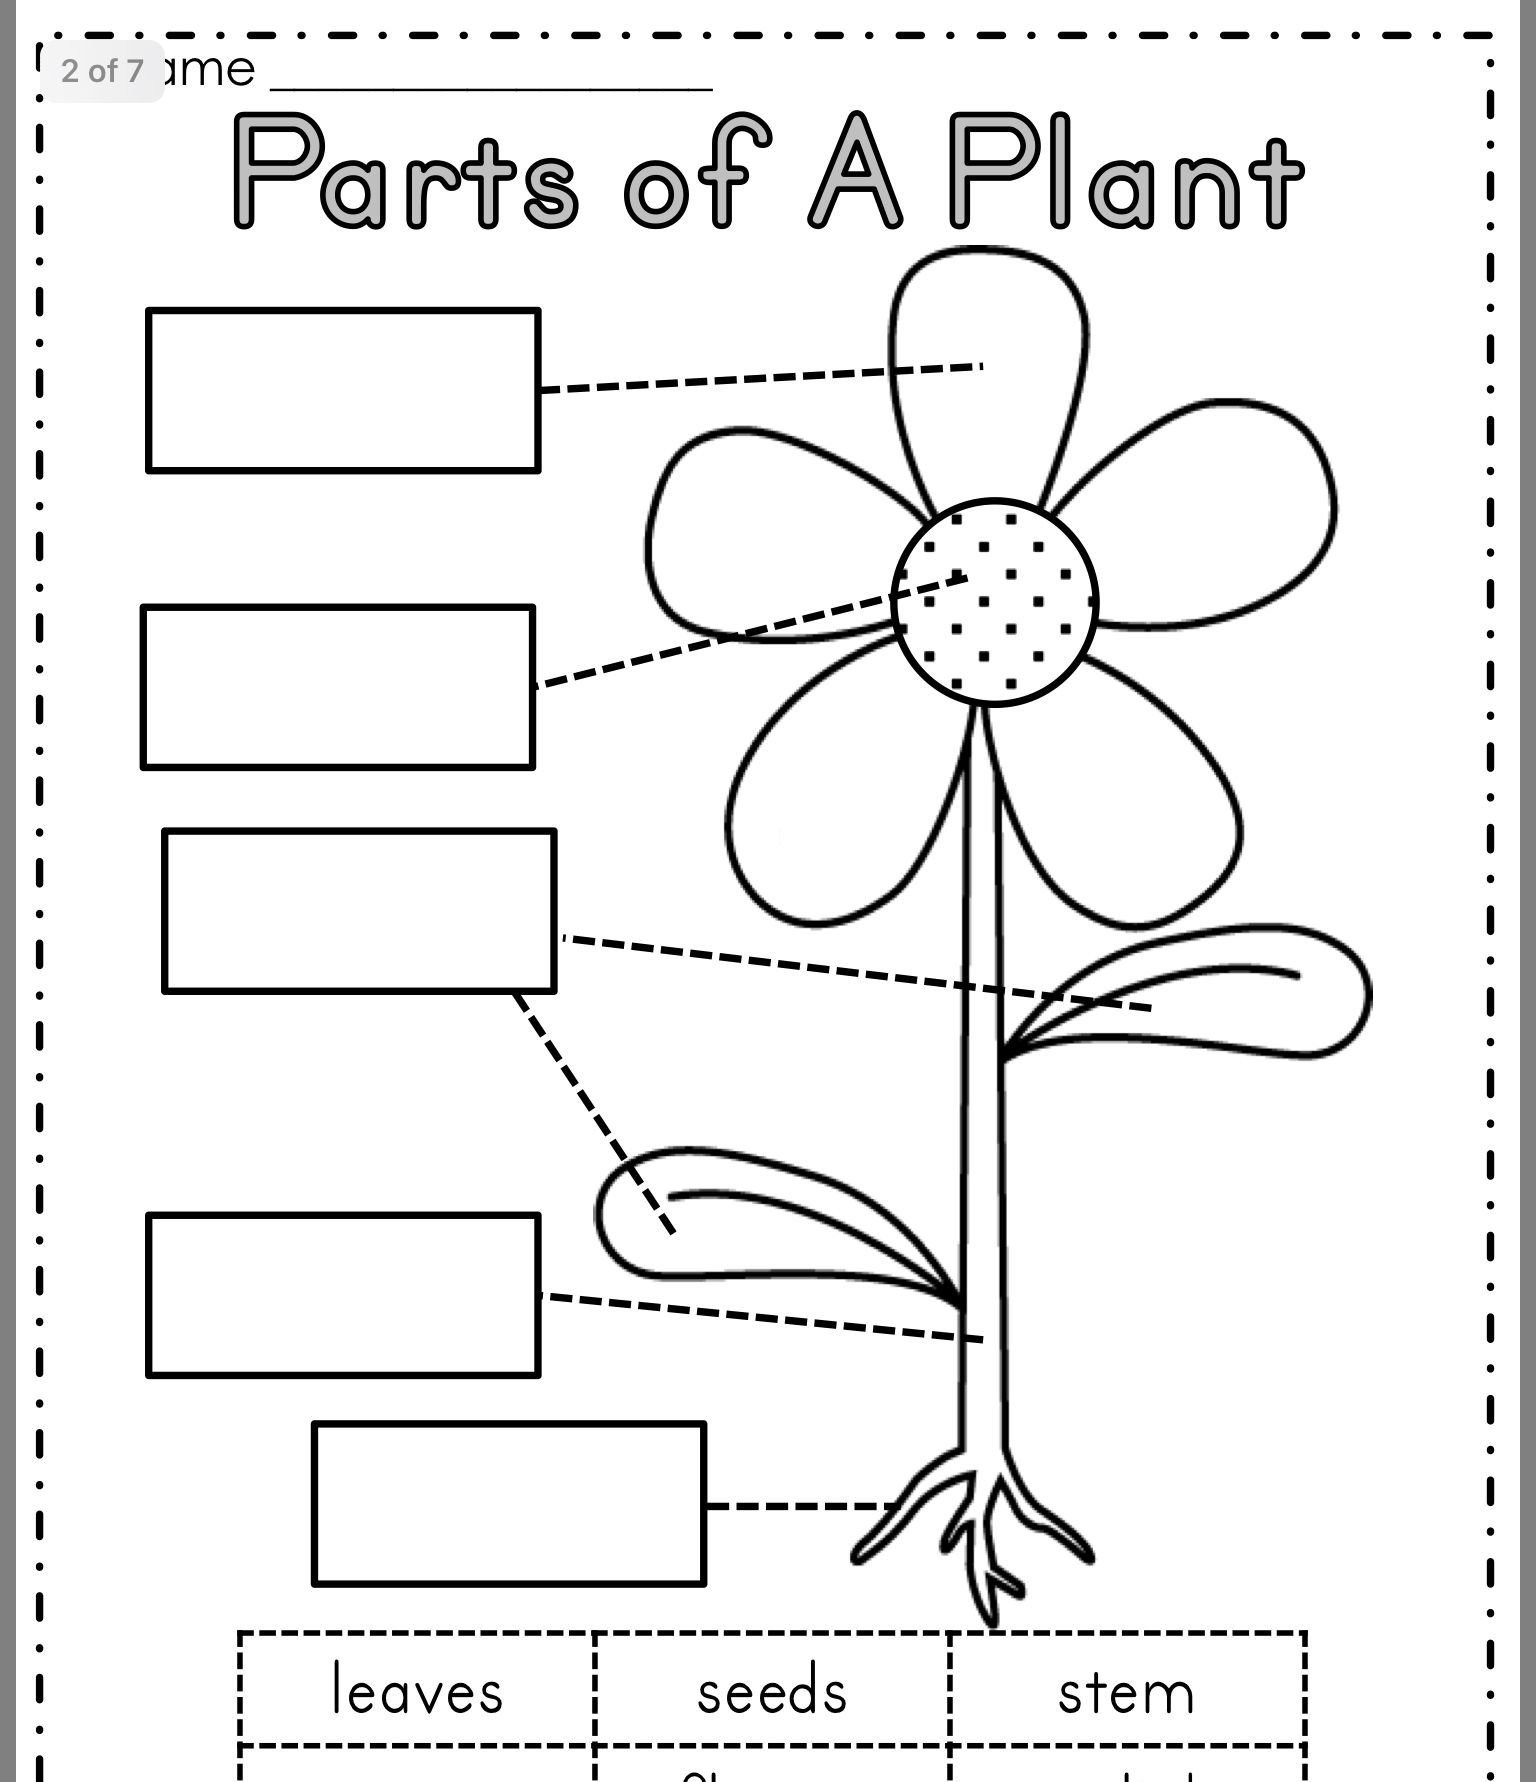 Parts of a plant image by anne emmanuel on School Plant